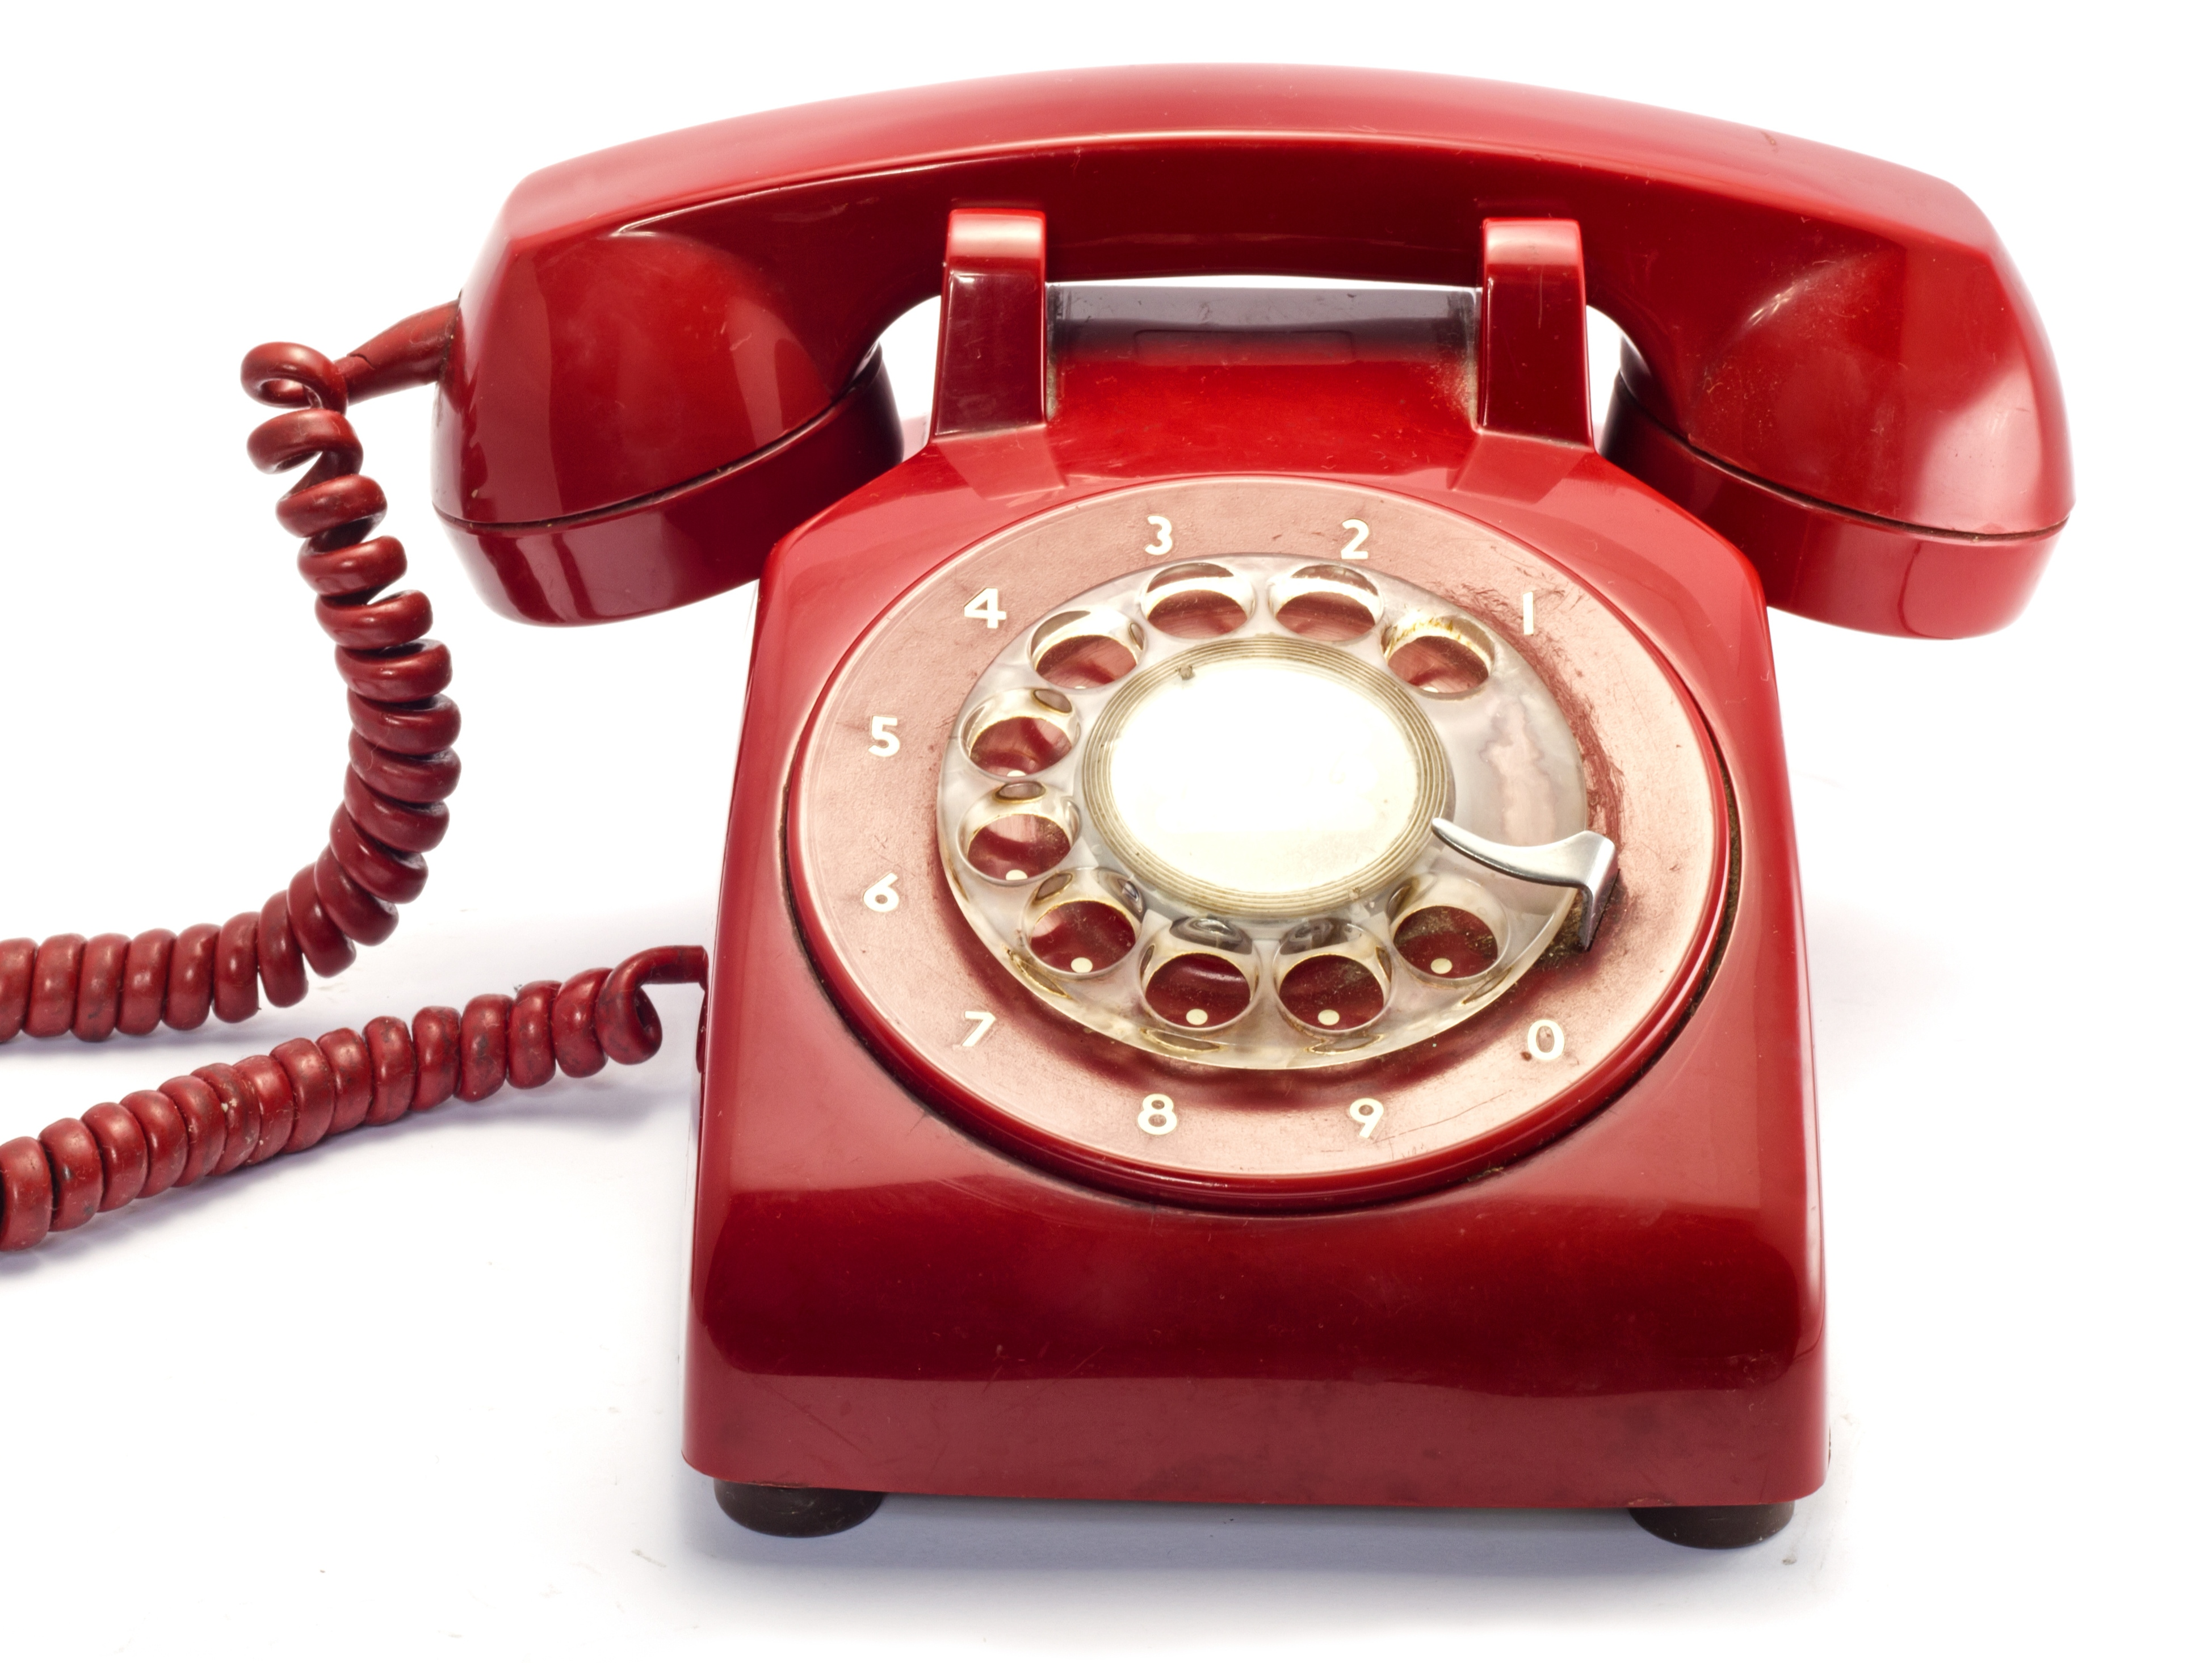 The TCPA – Searching for a Vintage Rotary Phone – The NL Insider